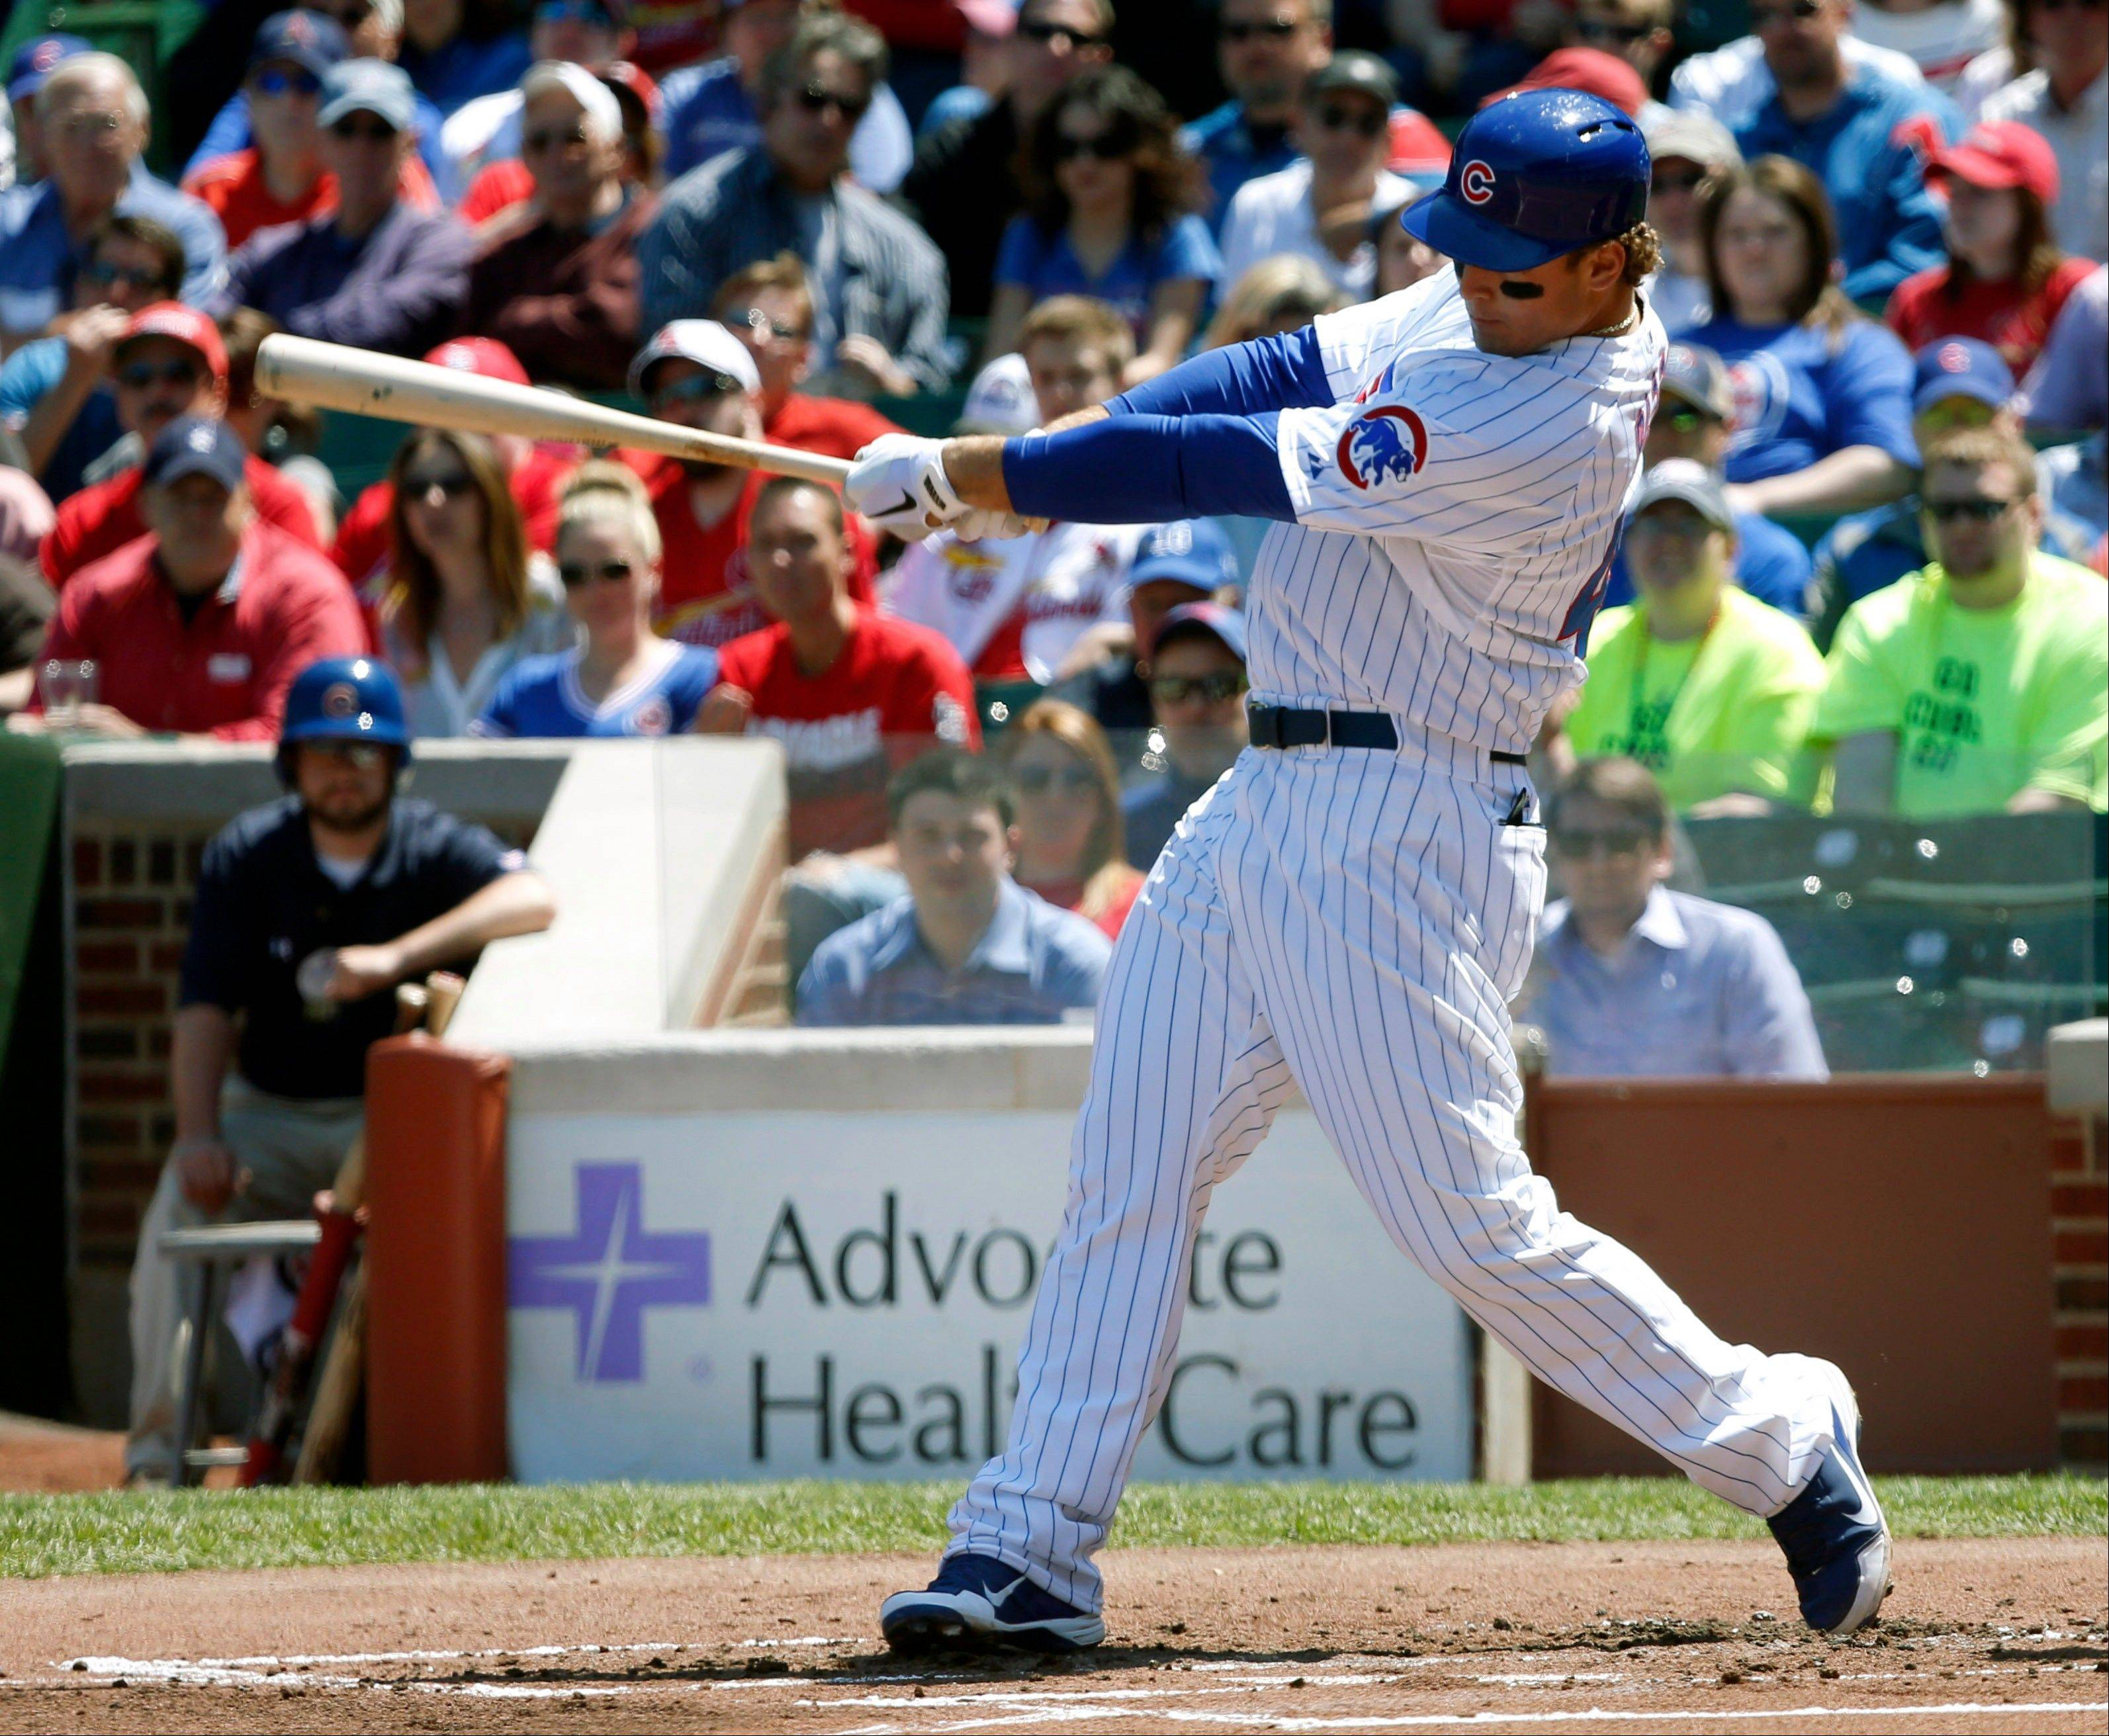 After a slow start, Cubs first baseman Anthony Rizzo is on pace to hit 42 home runs and 42 doubles this season, which would be remarkable.